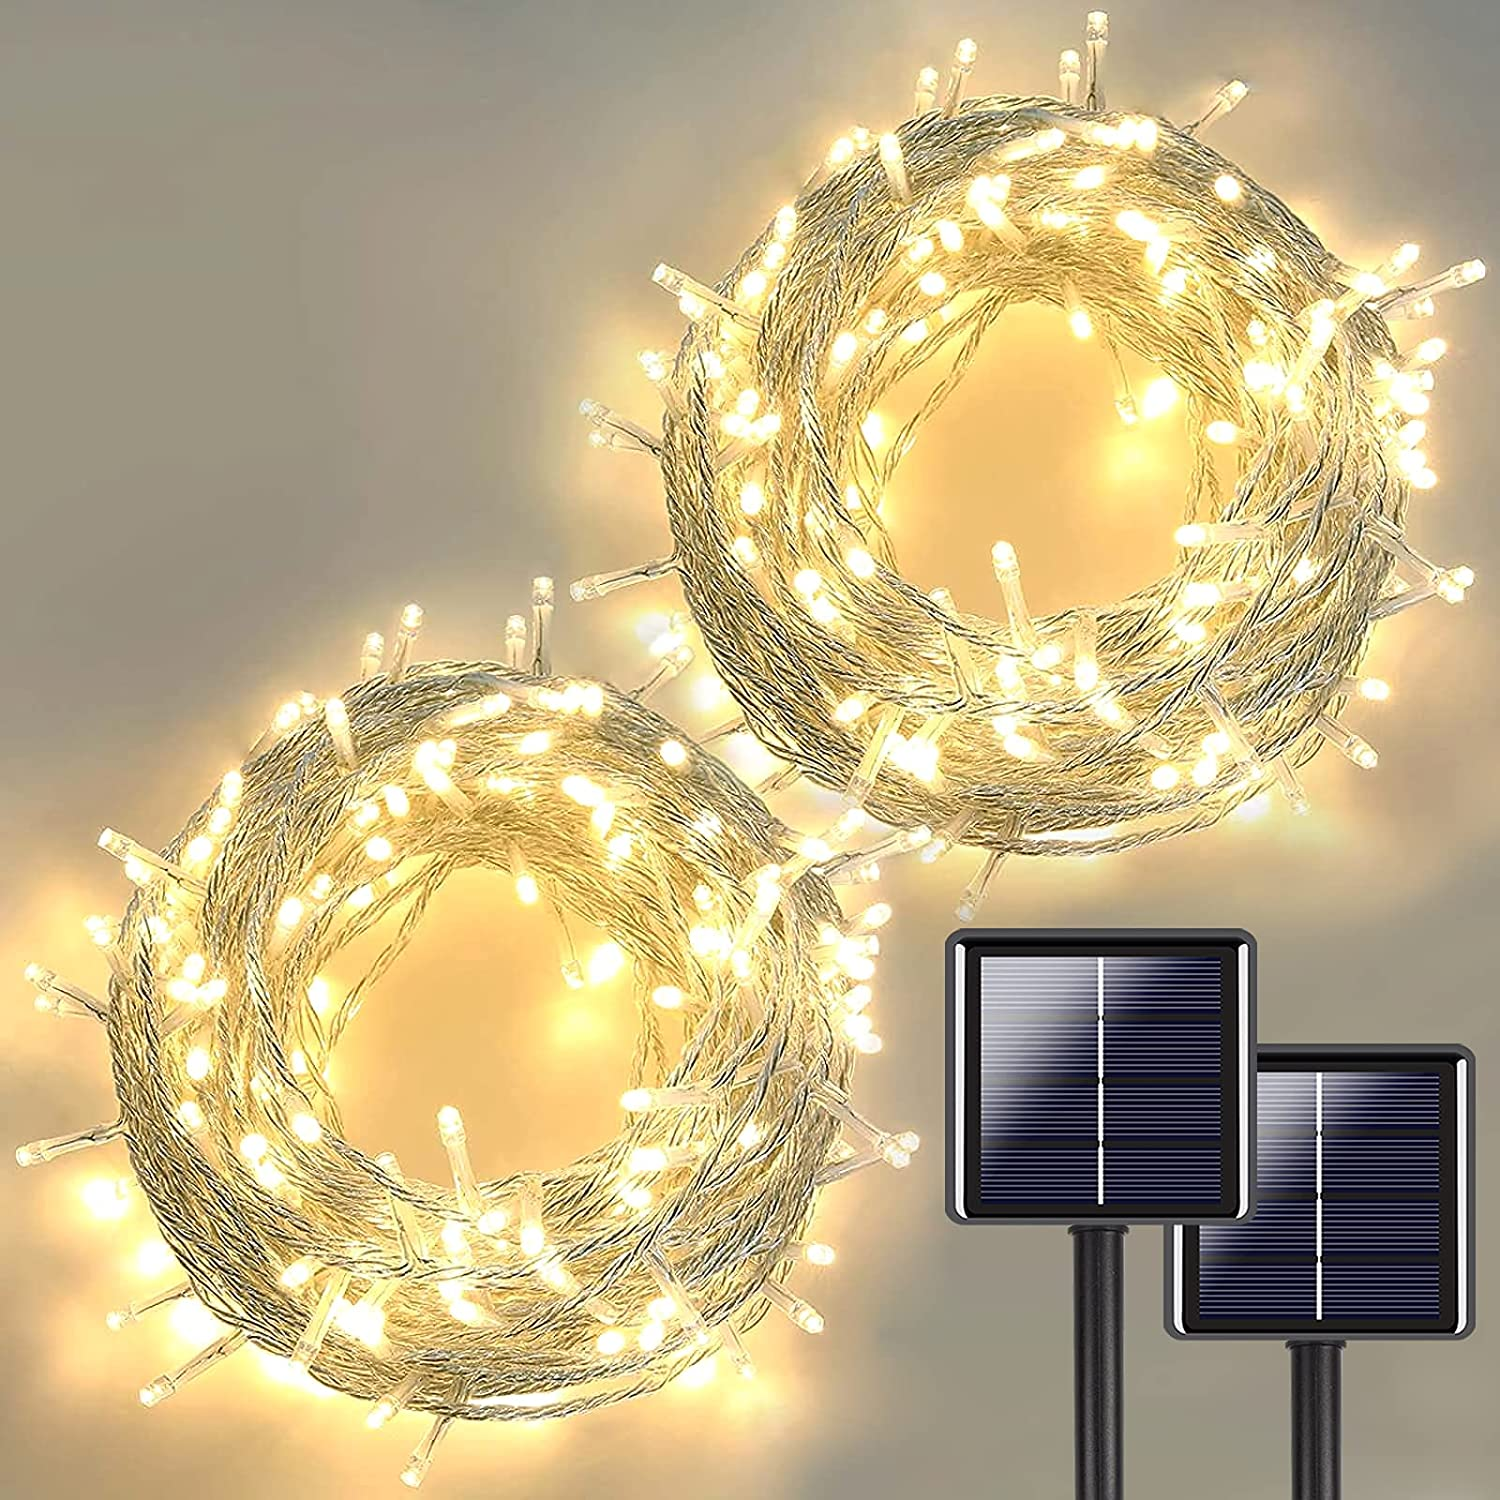 2-Pack Clear Wire Solar String Lights Outdoor, Total 75FT 200 LED Solar Lights Outdoor Decorative with 8 Lighting Modes, Solar Tree Lights for Garden Fence Wedding Christmas Party (Warm White)